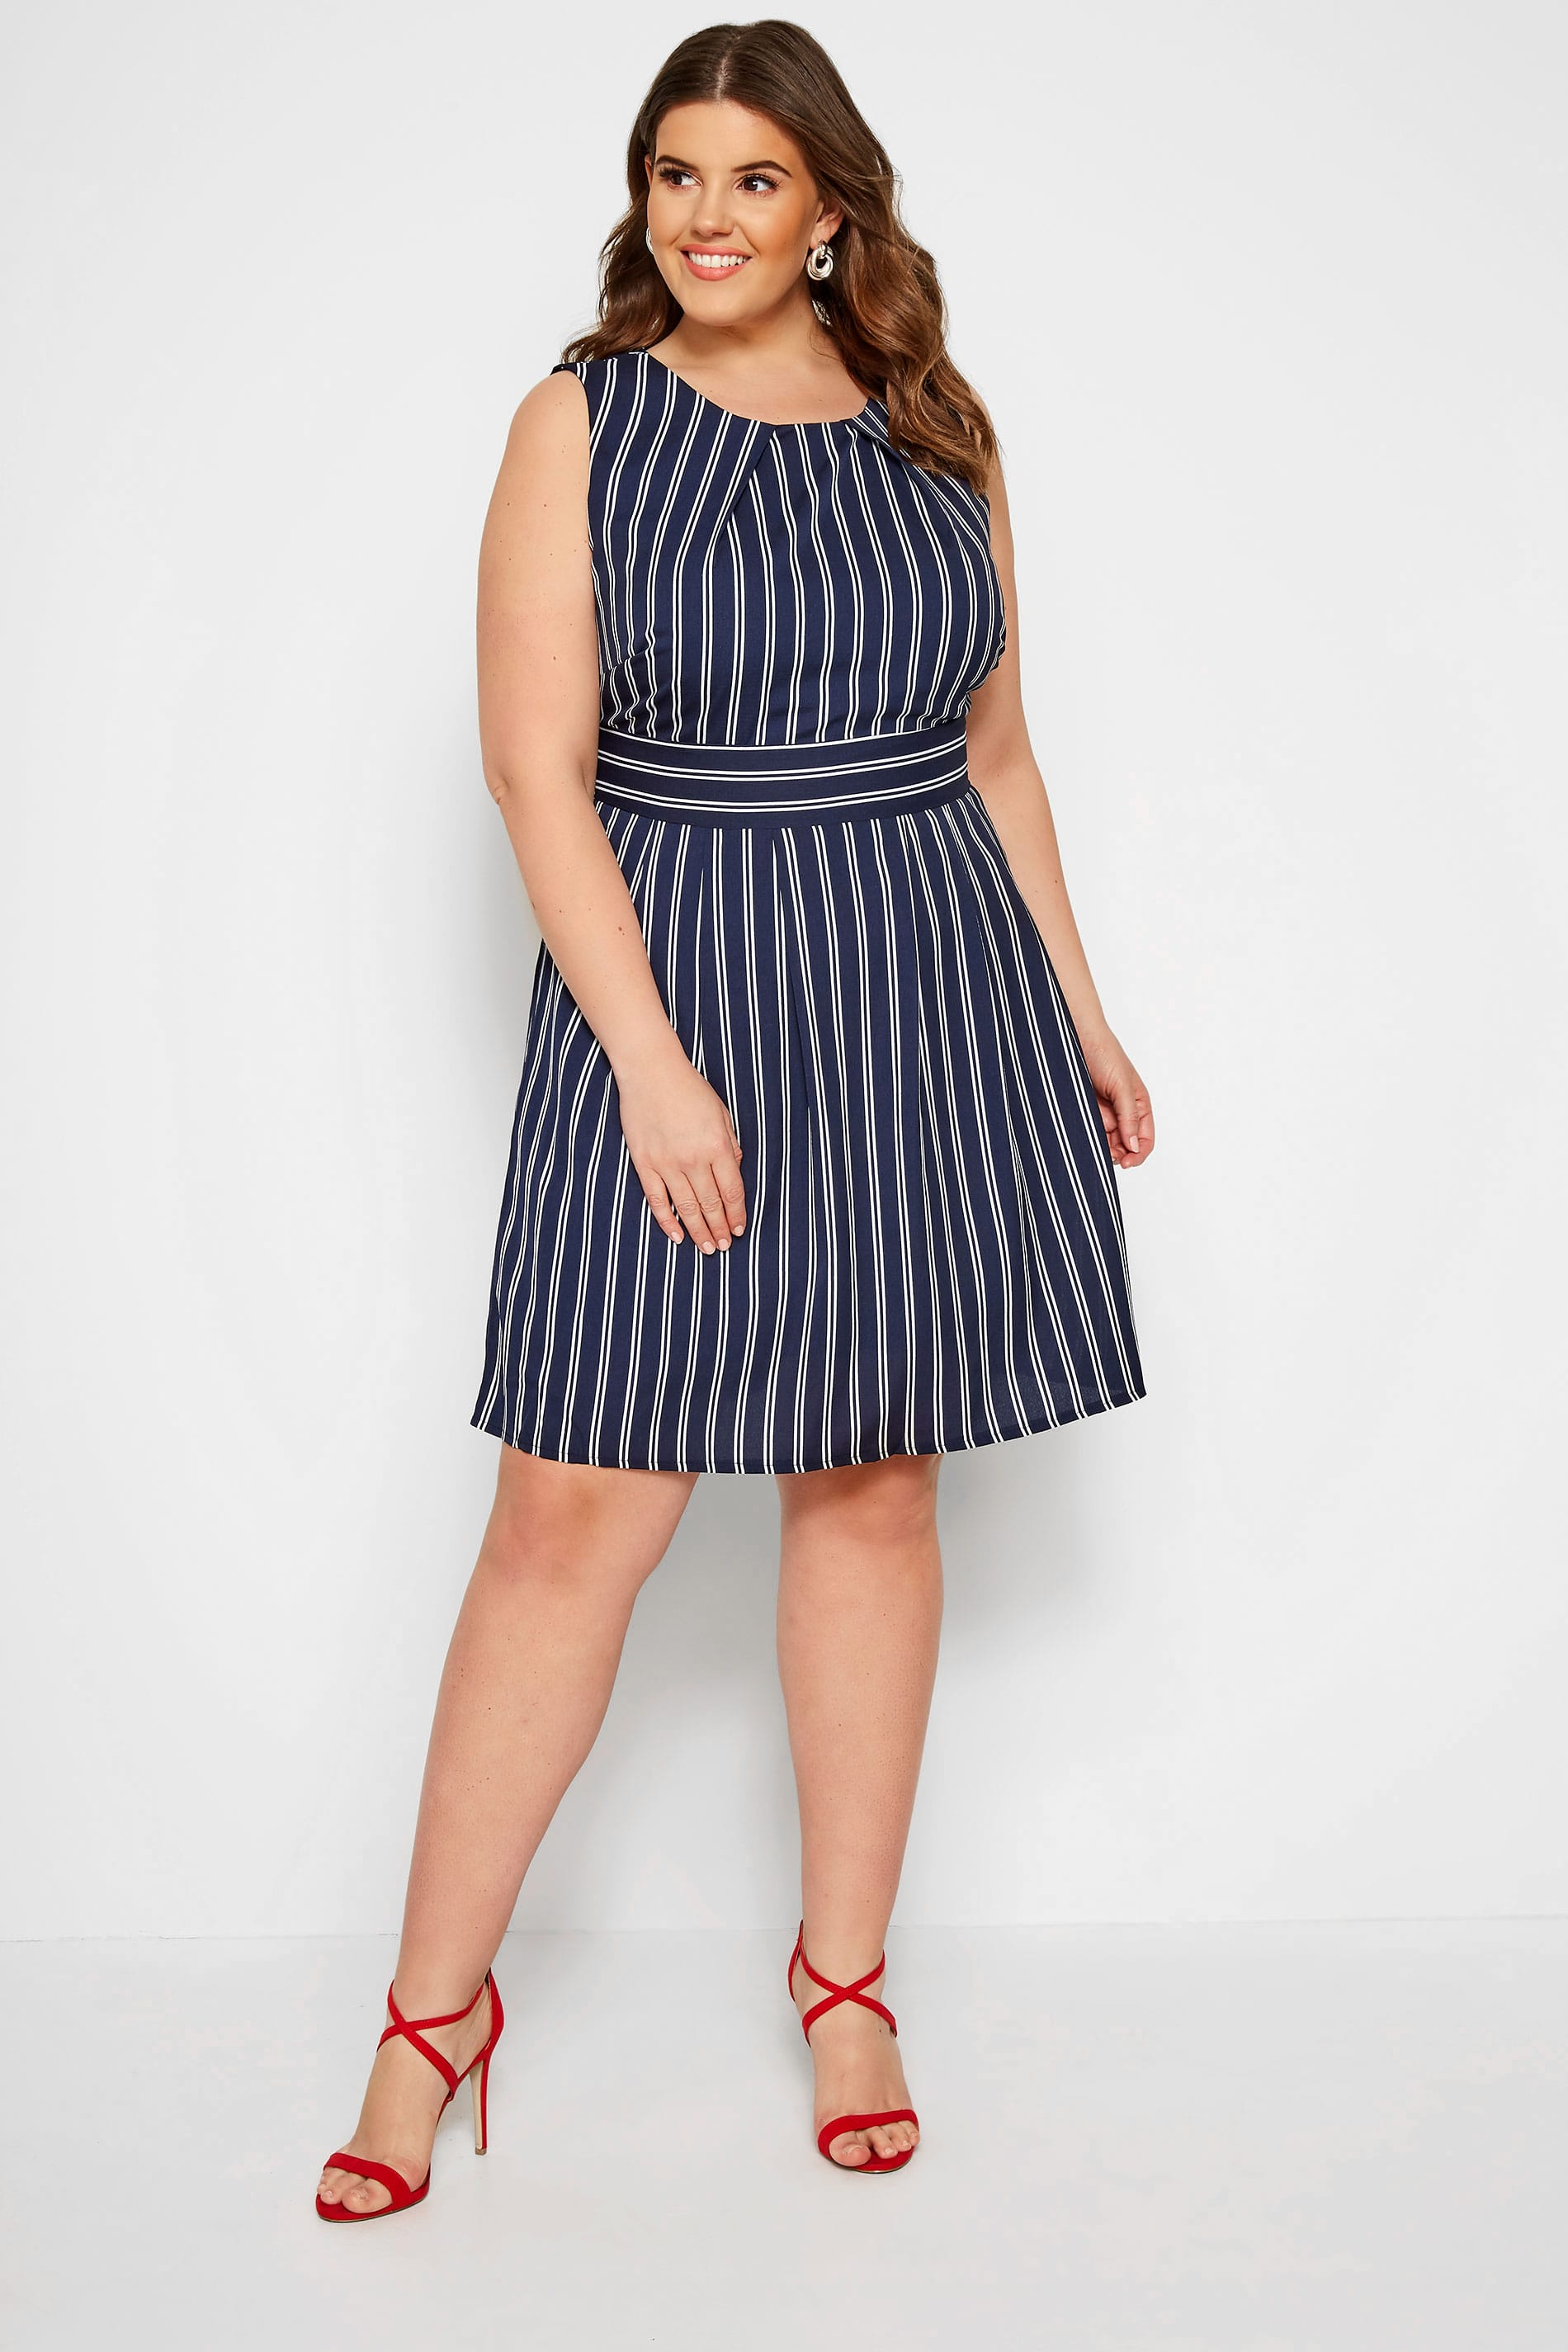 6d9d8b0e199 IZABEL CURVE Navy Stripe Skater Dress